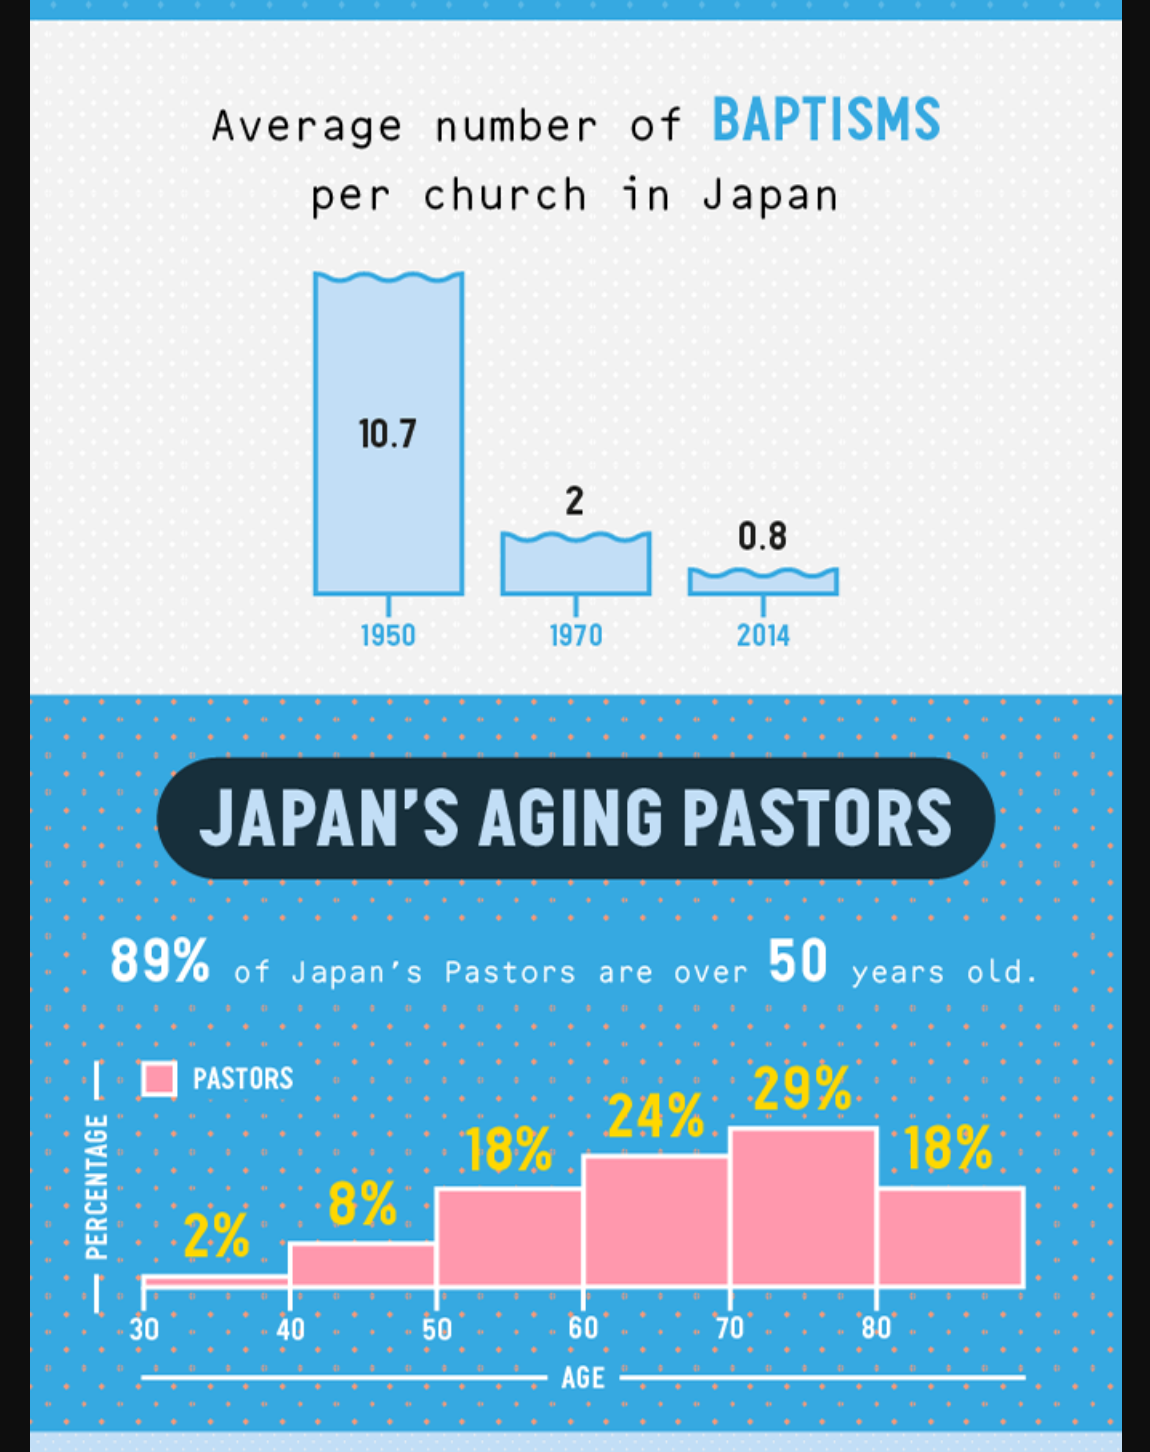 Christianity in Japan: Two Graphs